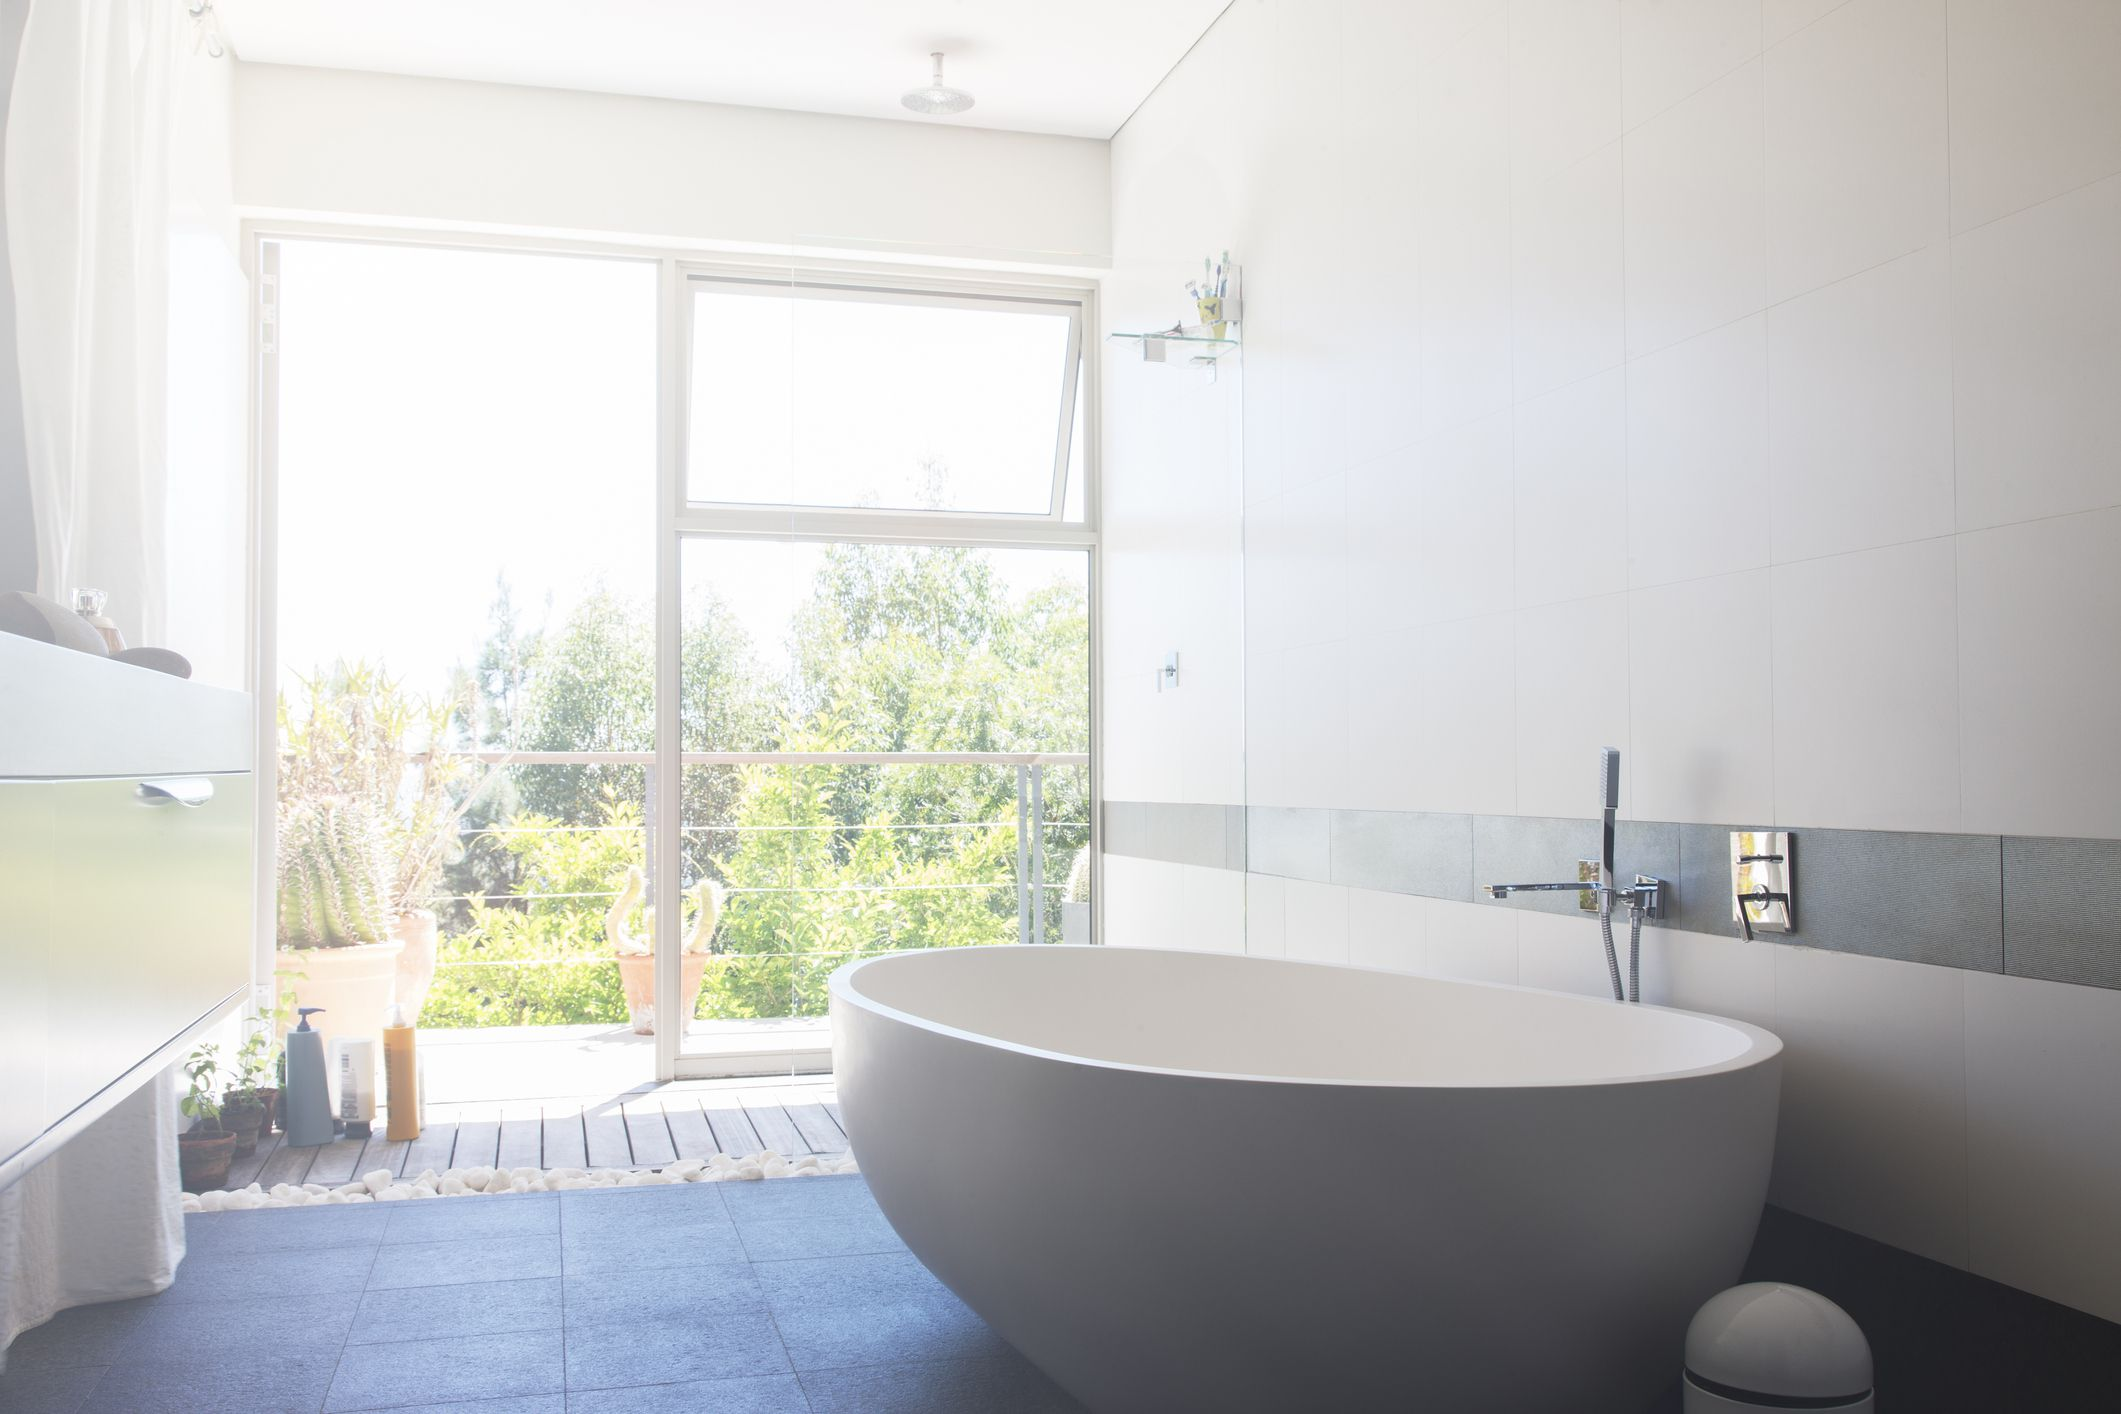 54 inch freestanding tub. 10 Bathtub Styles You Should Know About Sizes  Reference Guide to Common Tubs